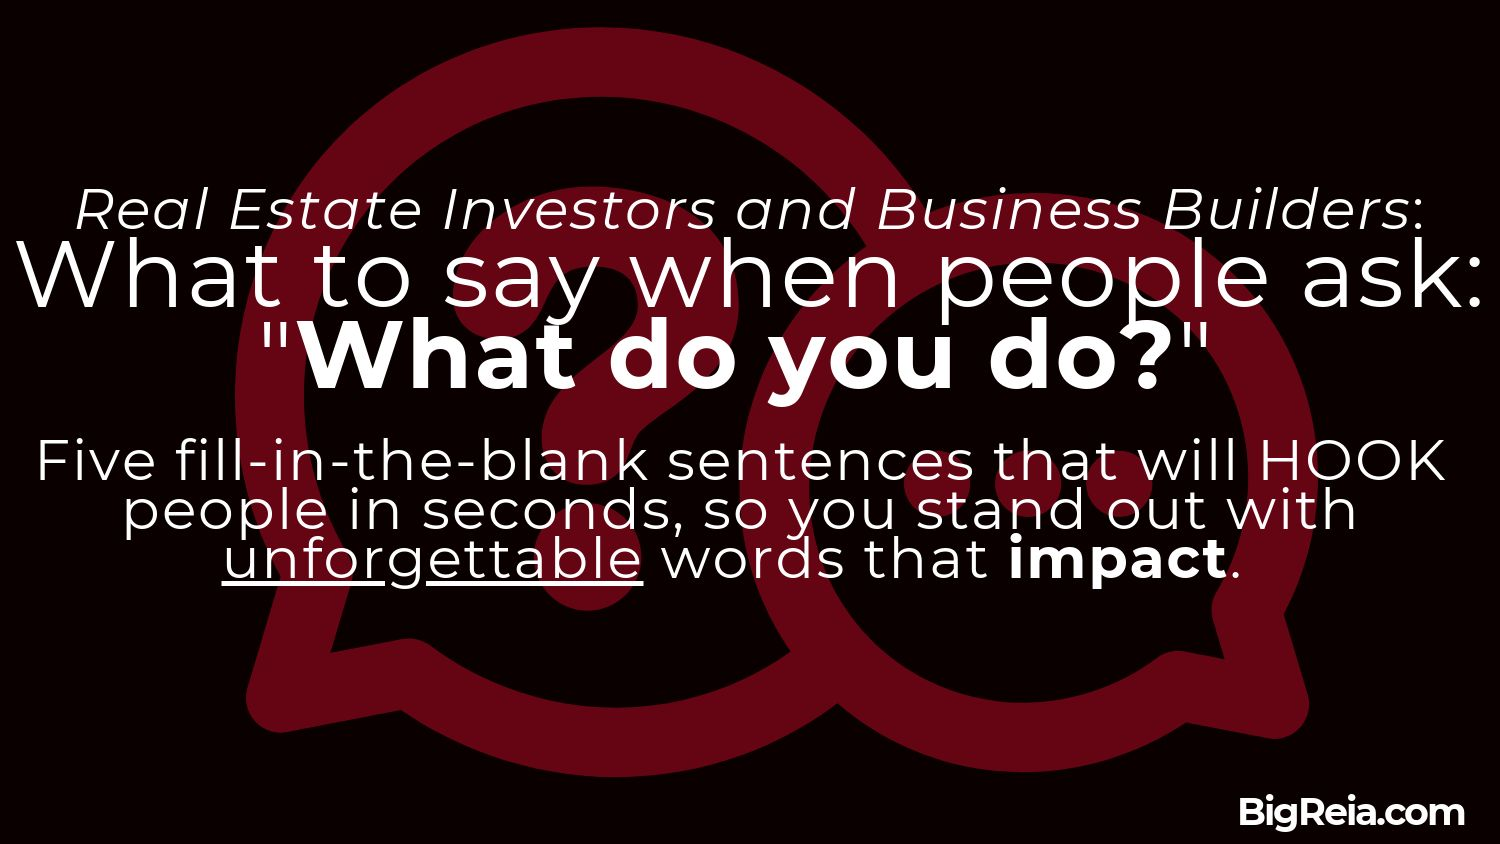 Answer people when they ask what you do - BigReia.com